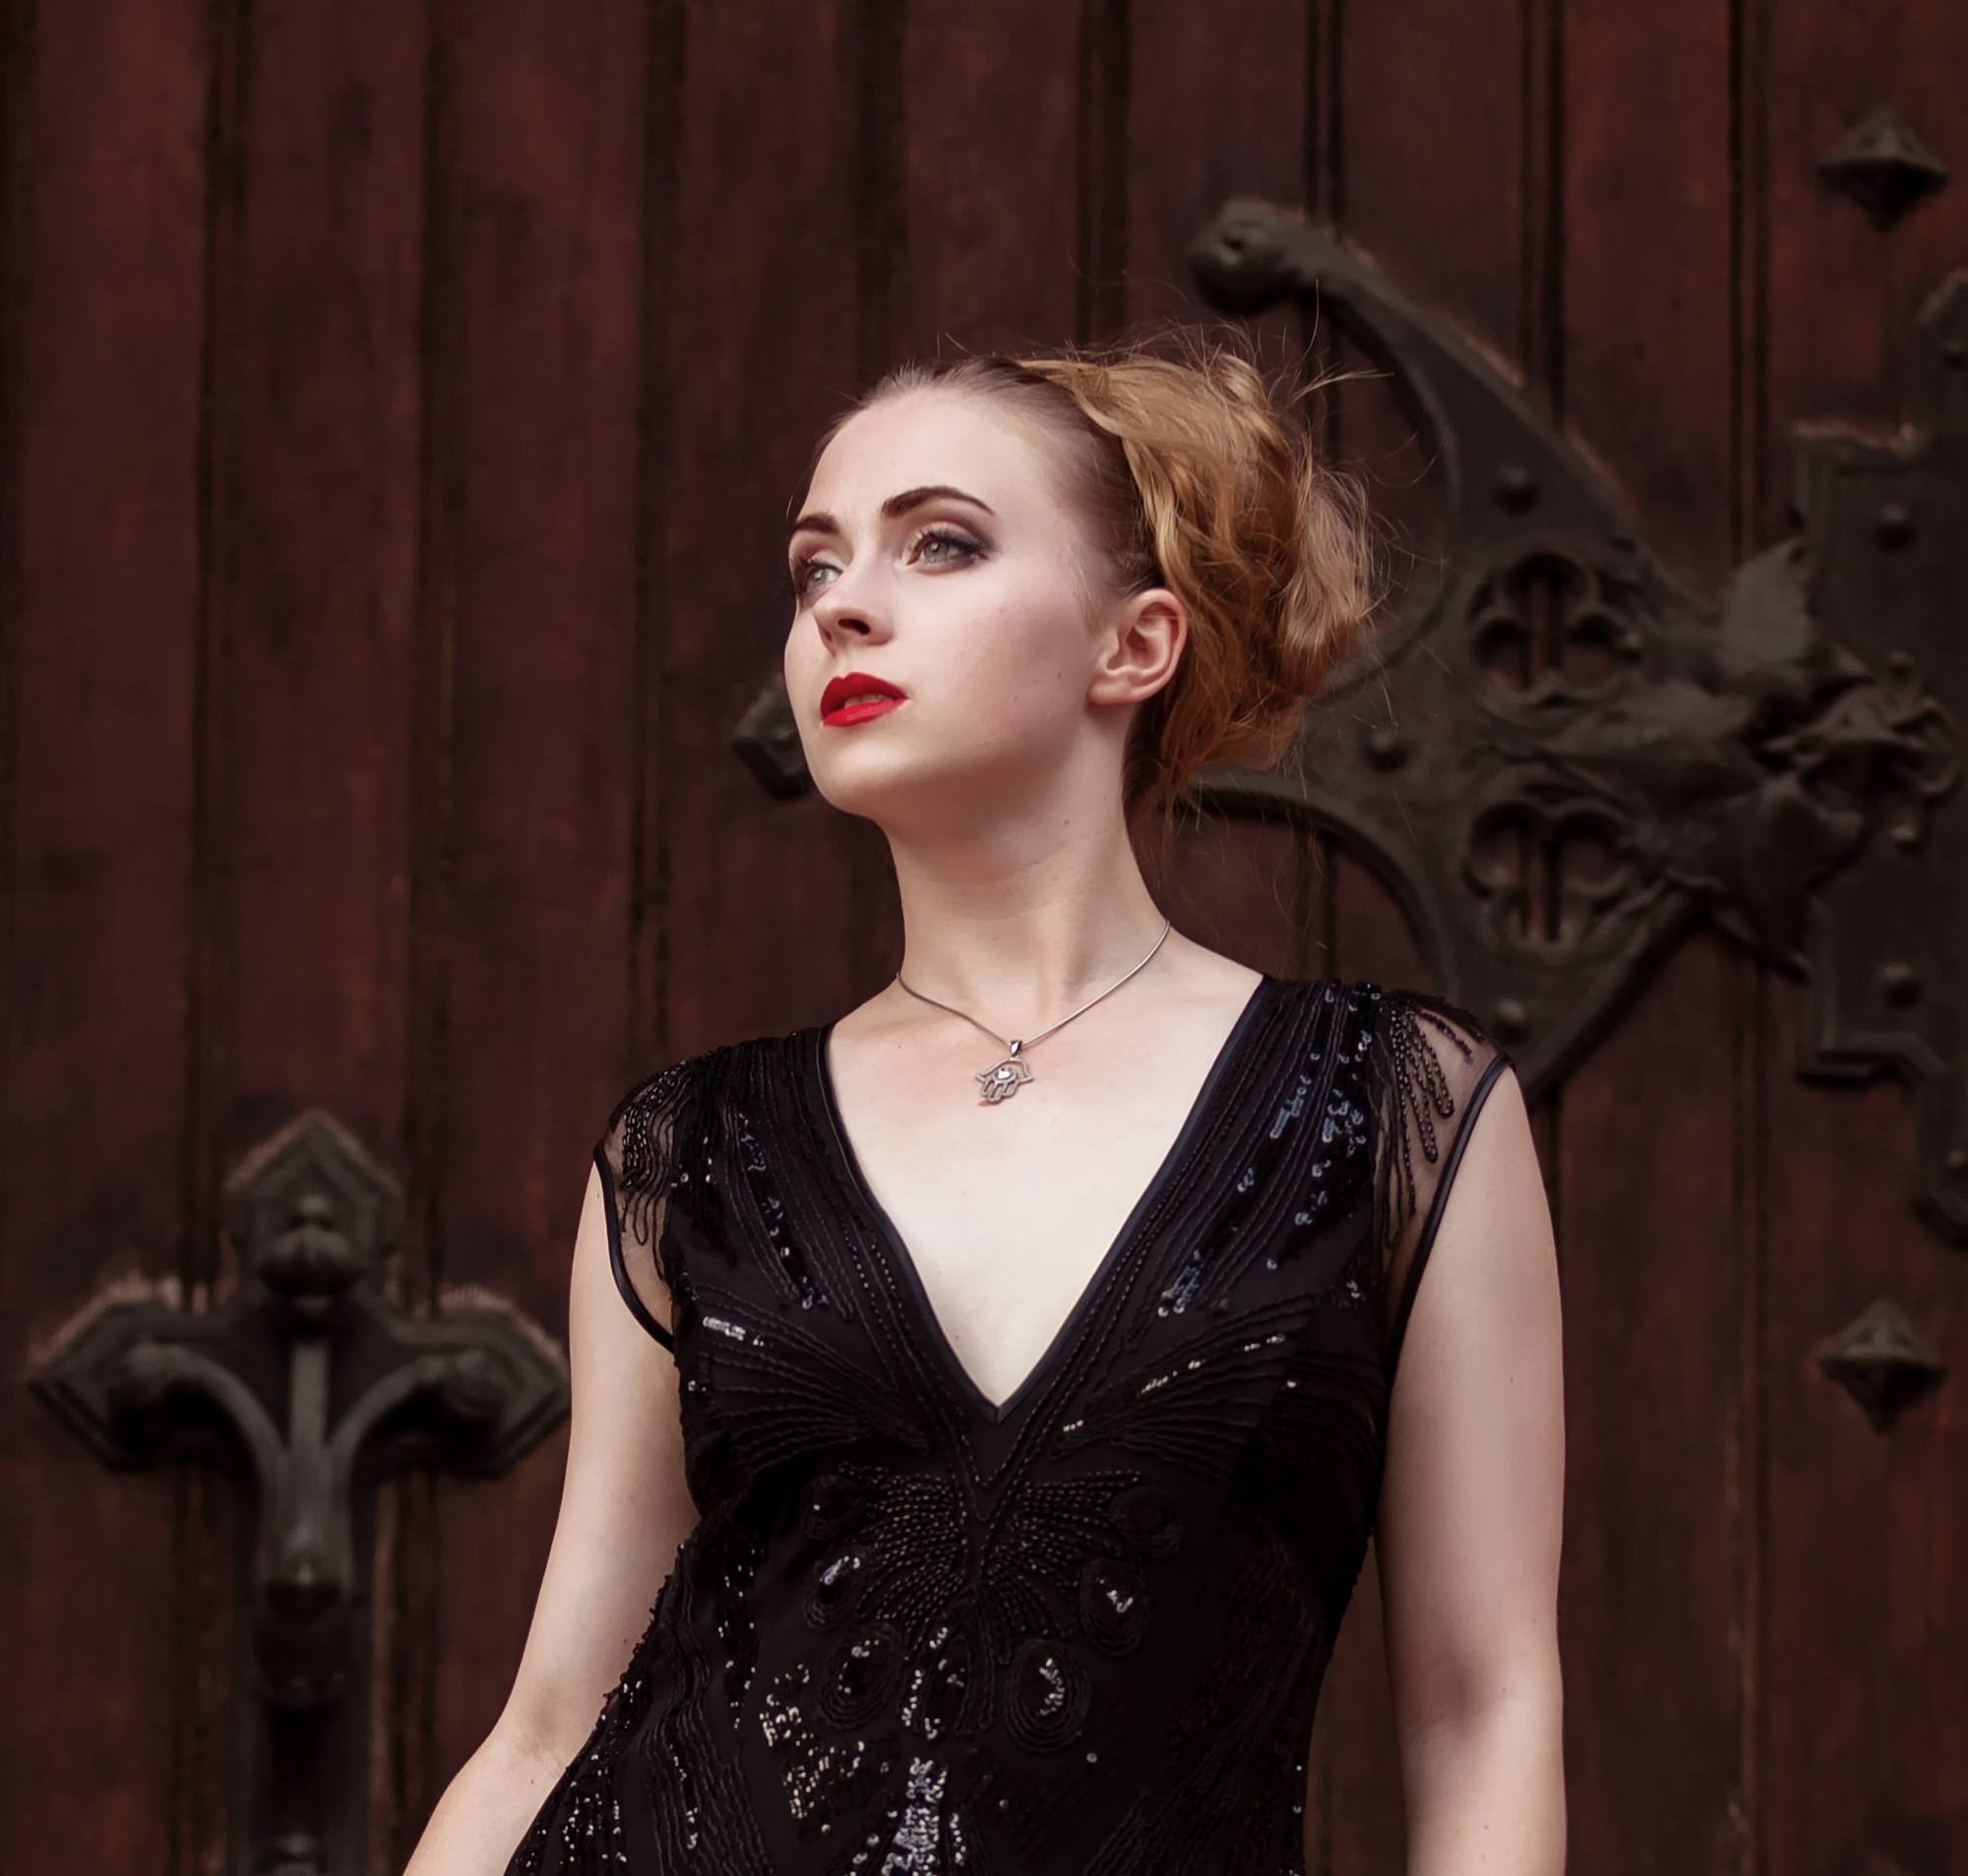 Halloween glam hair: Woman with brownish blonde hair in a big bun wearing a long black dress and standing against a wooden door in an outdoor location